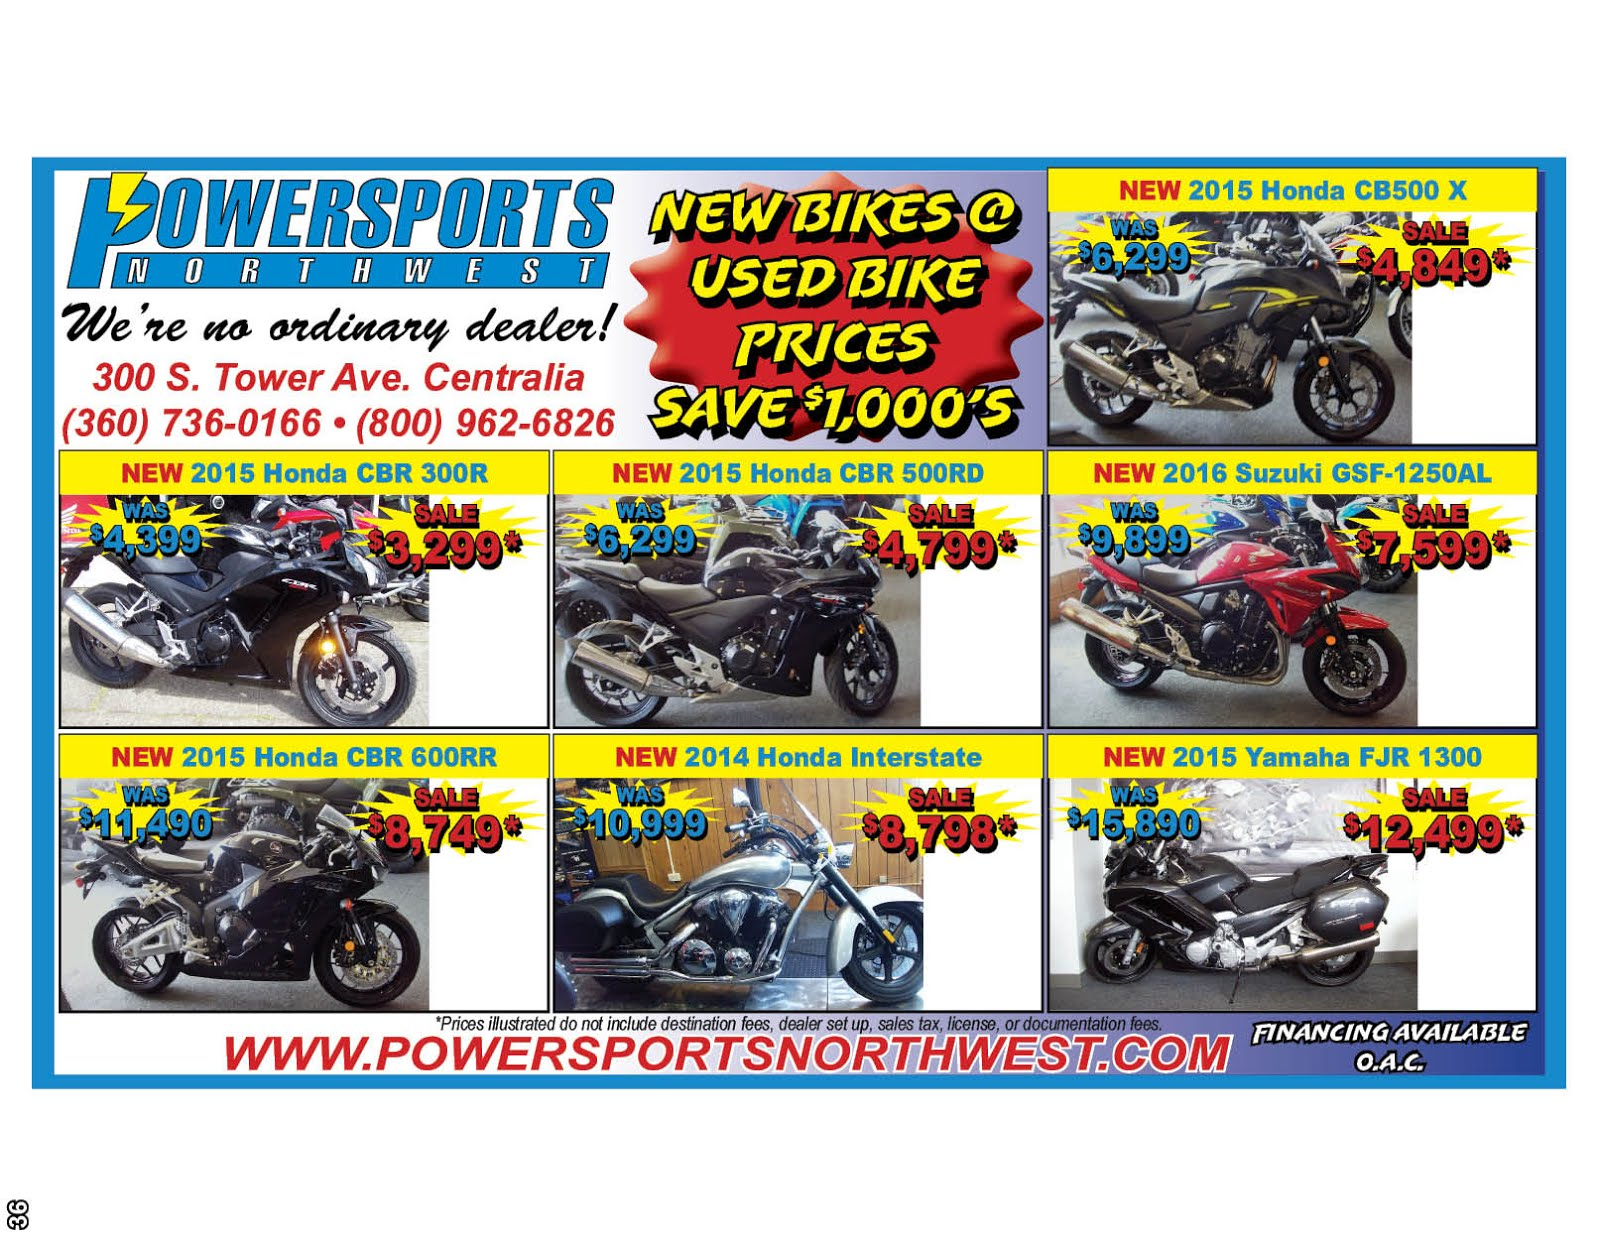 Powersports Northwest We're No Ordinary Dealer!!